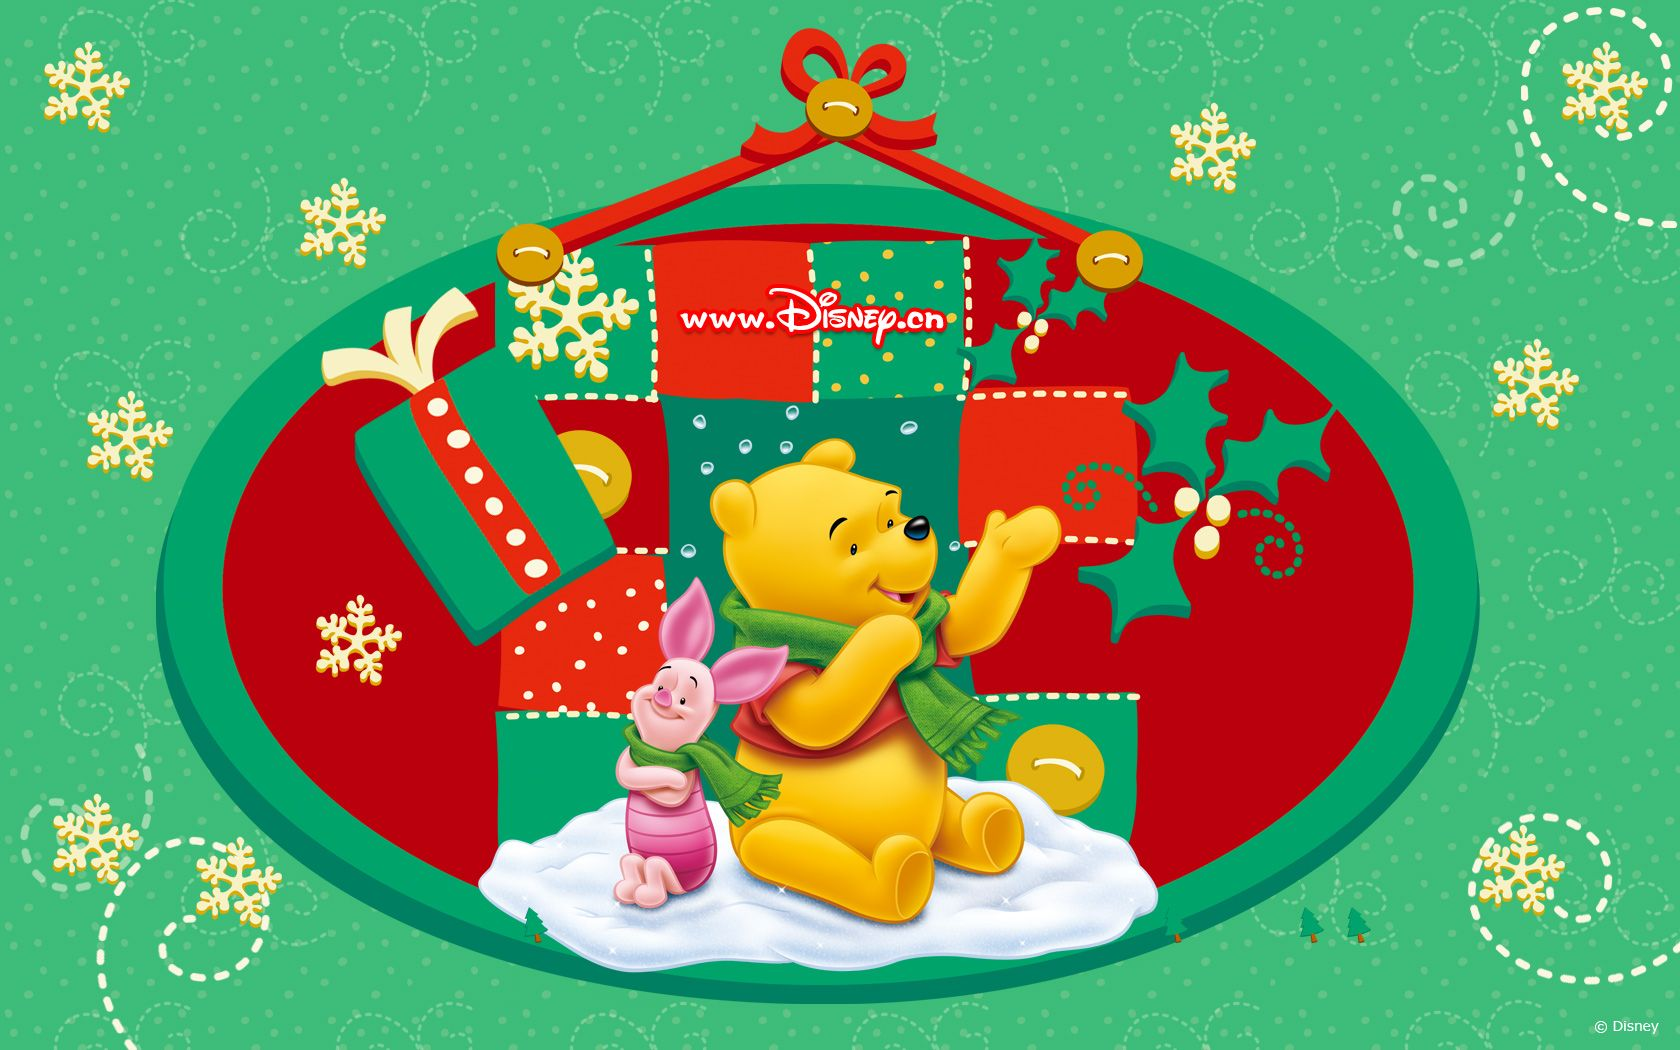 View download comment and rate this 1680x1050 winnie the pooh view download comment and rate this 1680x1050 winnie the pooh wallpaper wallpaper voltagebd Image collections